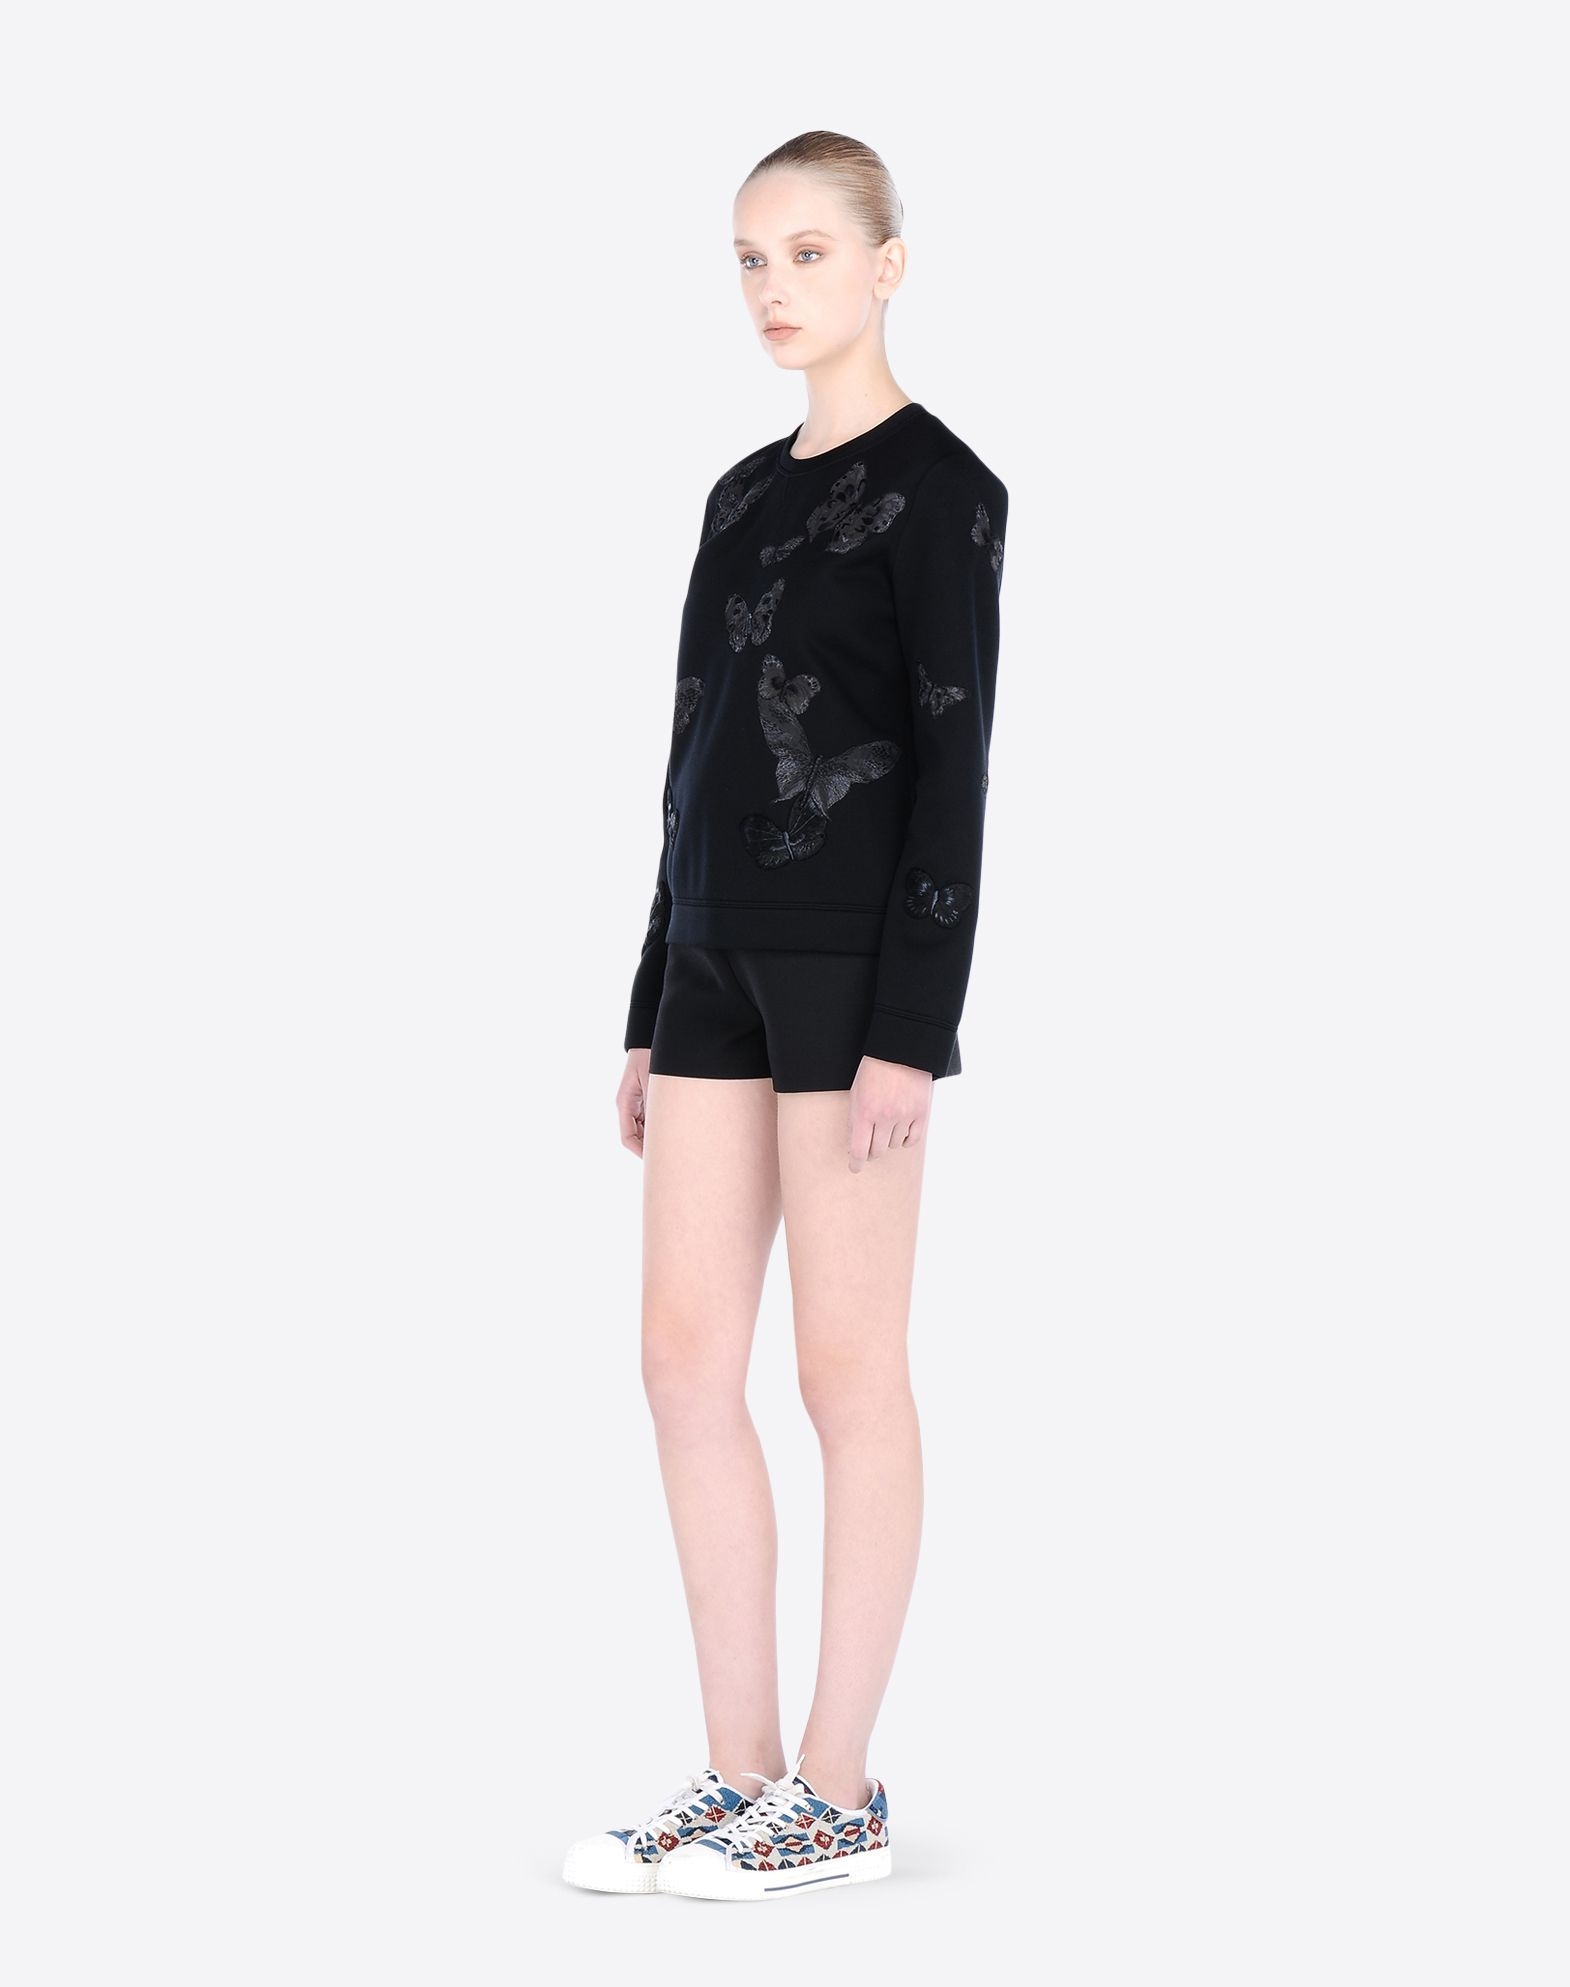 VALENTINO Shorts in solid crepe couture.  - Concealed side fastening.  - Length 33 cm.  - Silk lining.  - Crepe Couture (65% Virgin Wool, 35% Silk).  - Regular fit.  The model is 176 cm tall and wears an Italian size 40.  - Made in Italy.    36767911wd